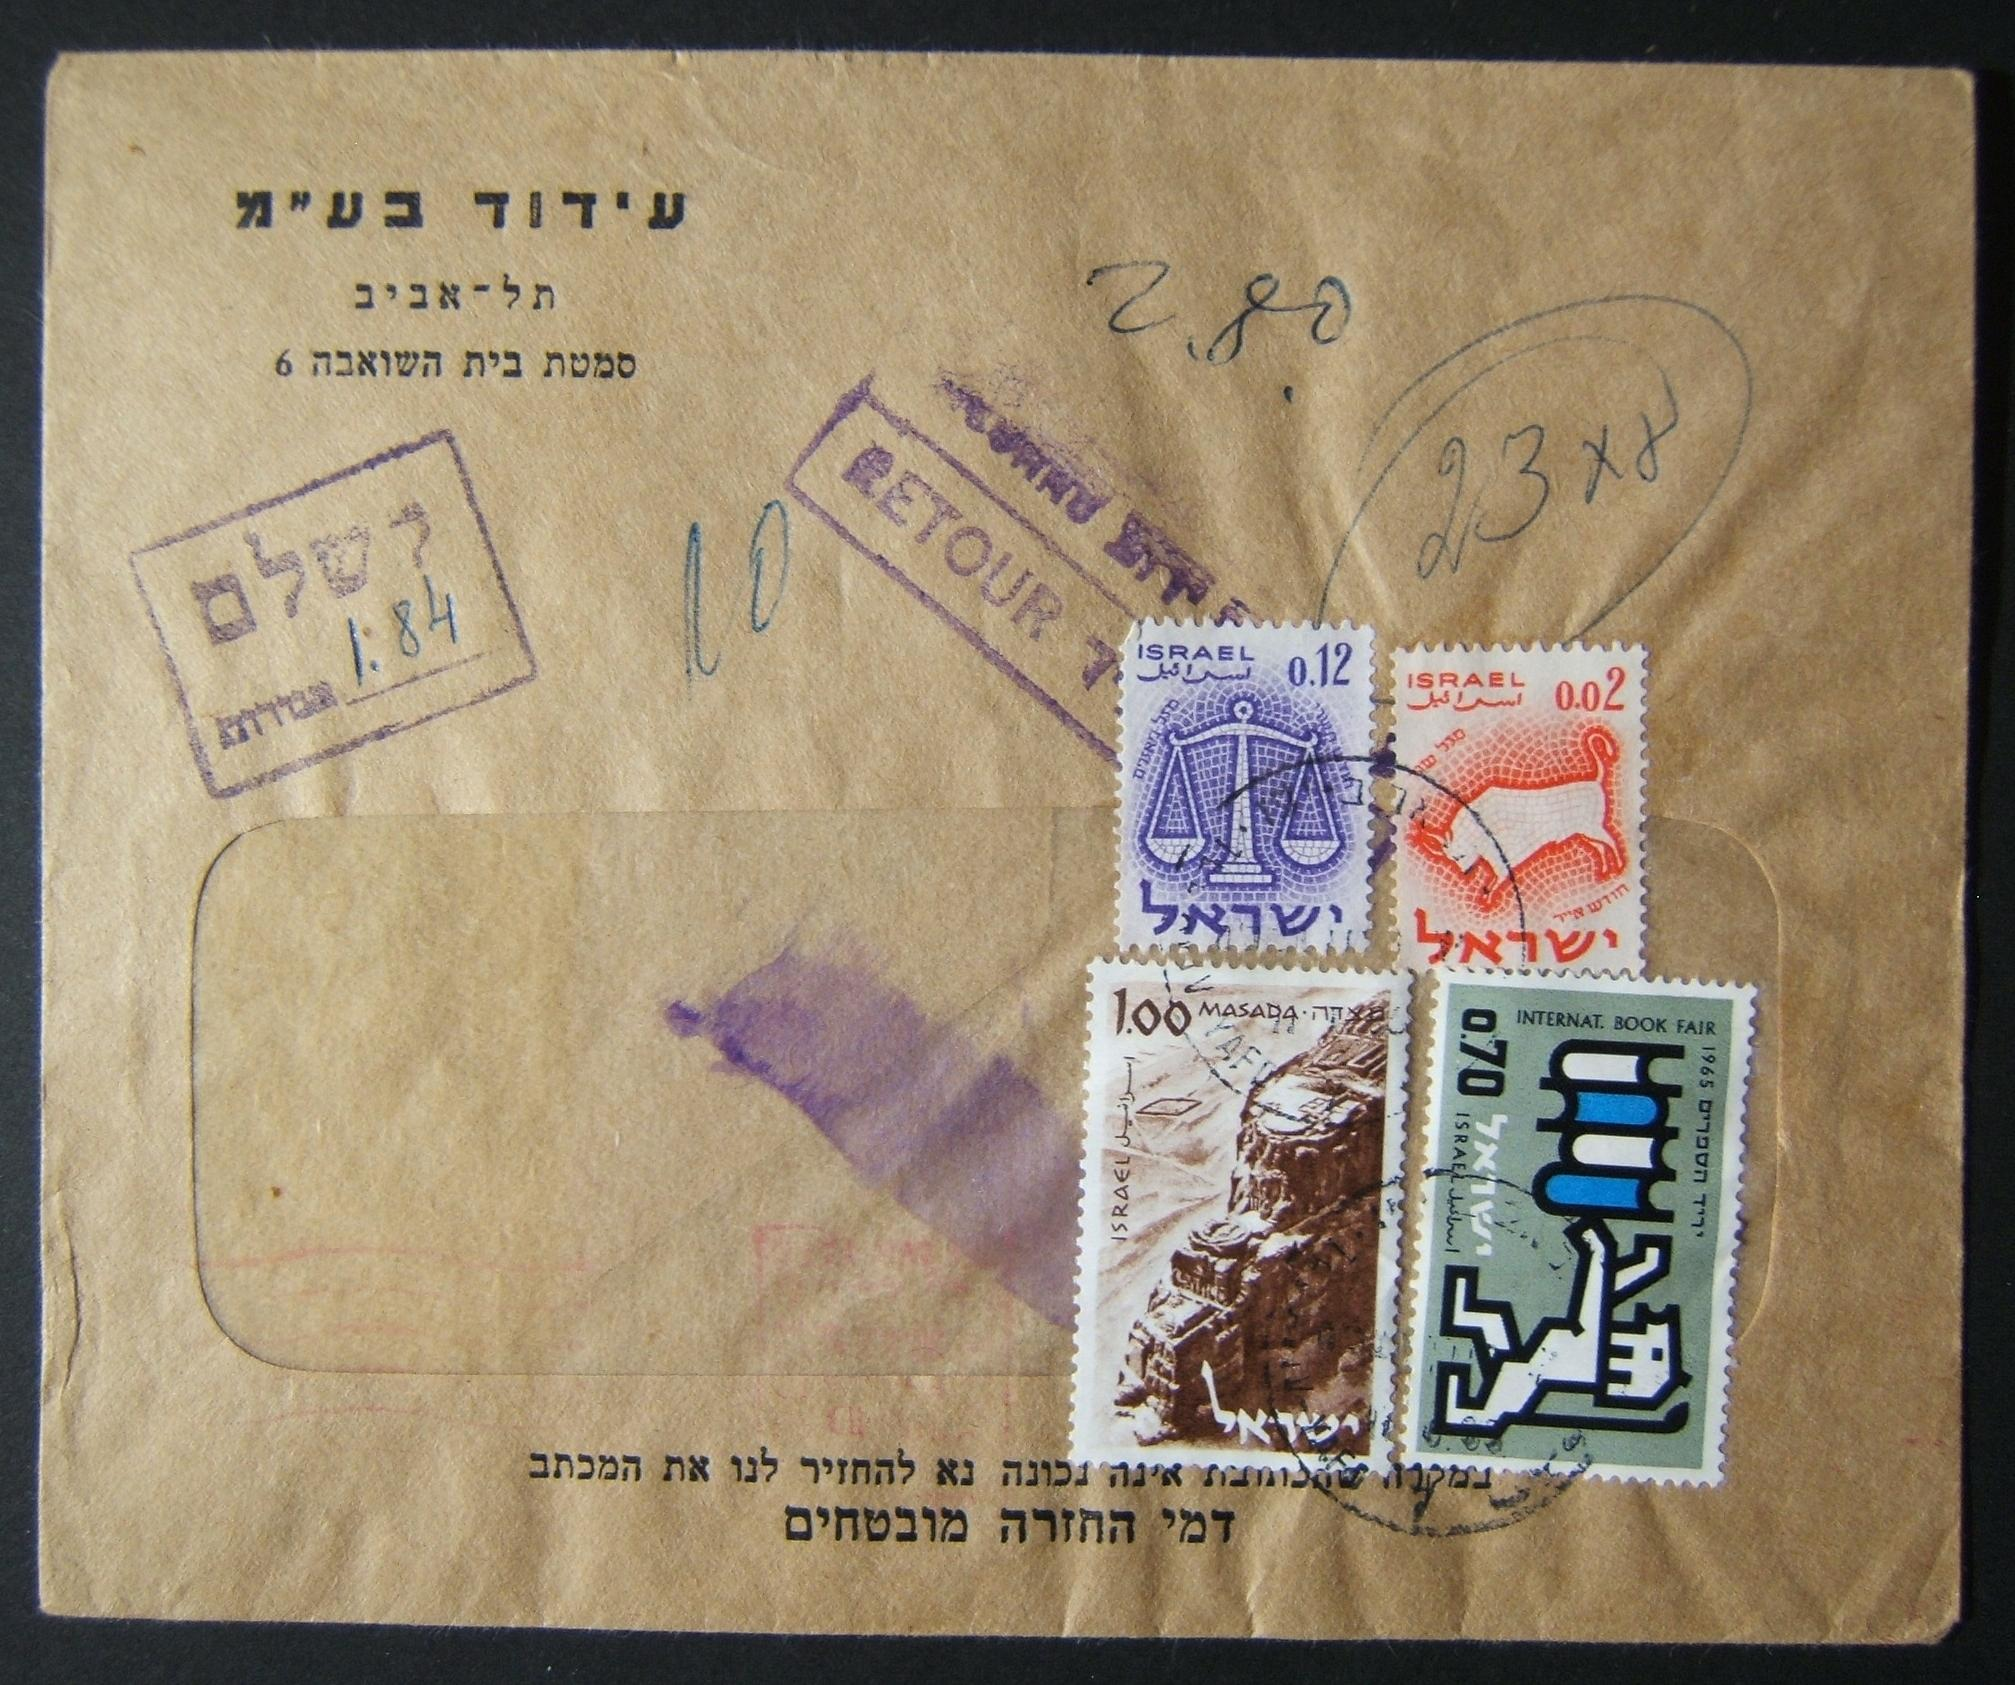 1965 domestic 'top of the pile' taxed franking: 30-5-65 printed matter commercial cover ex TLV branch of Idud Ltd. franked by machine prepayment at the DO-11 period 8 Ag PM rate (a